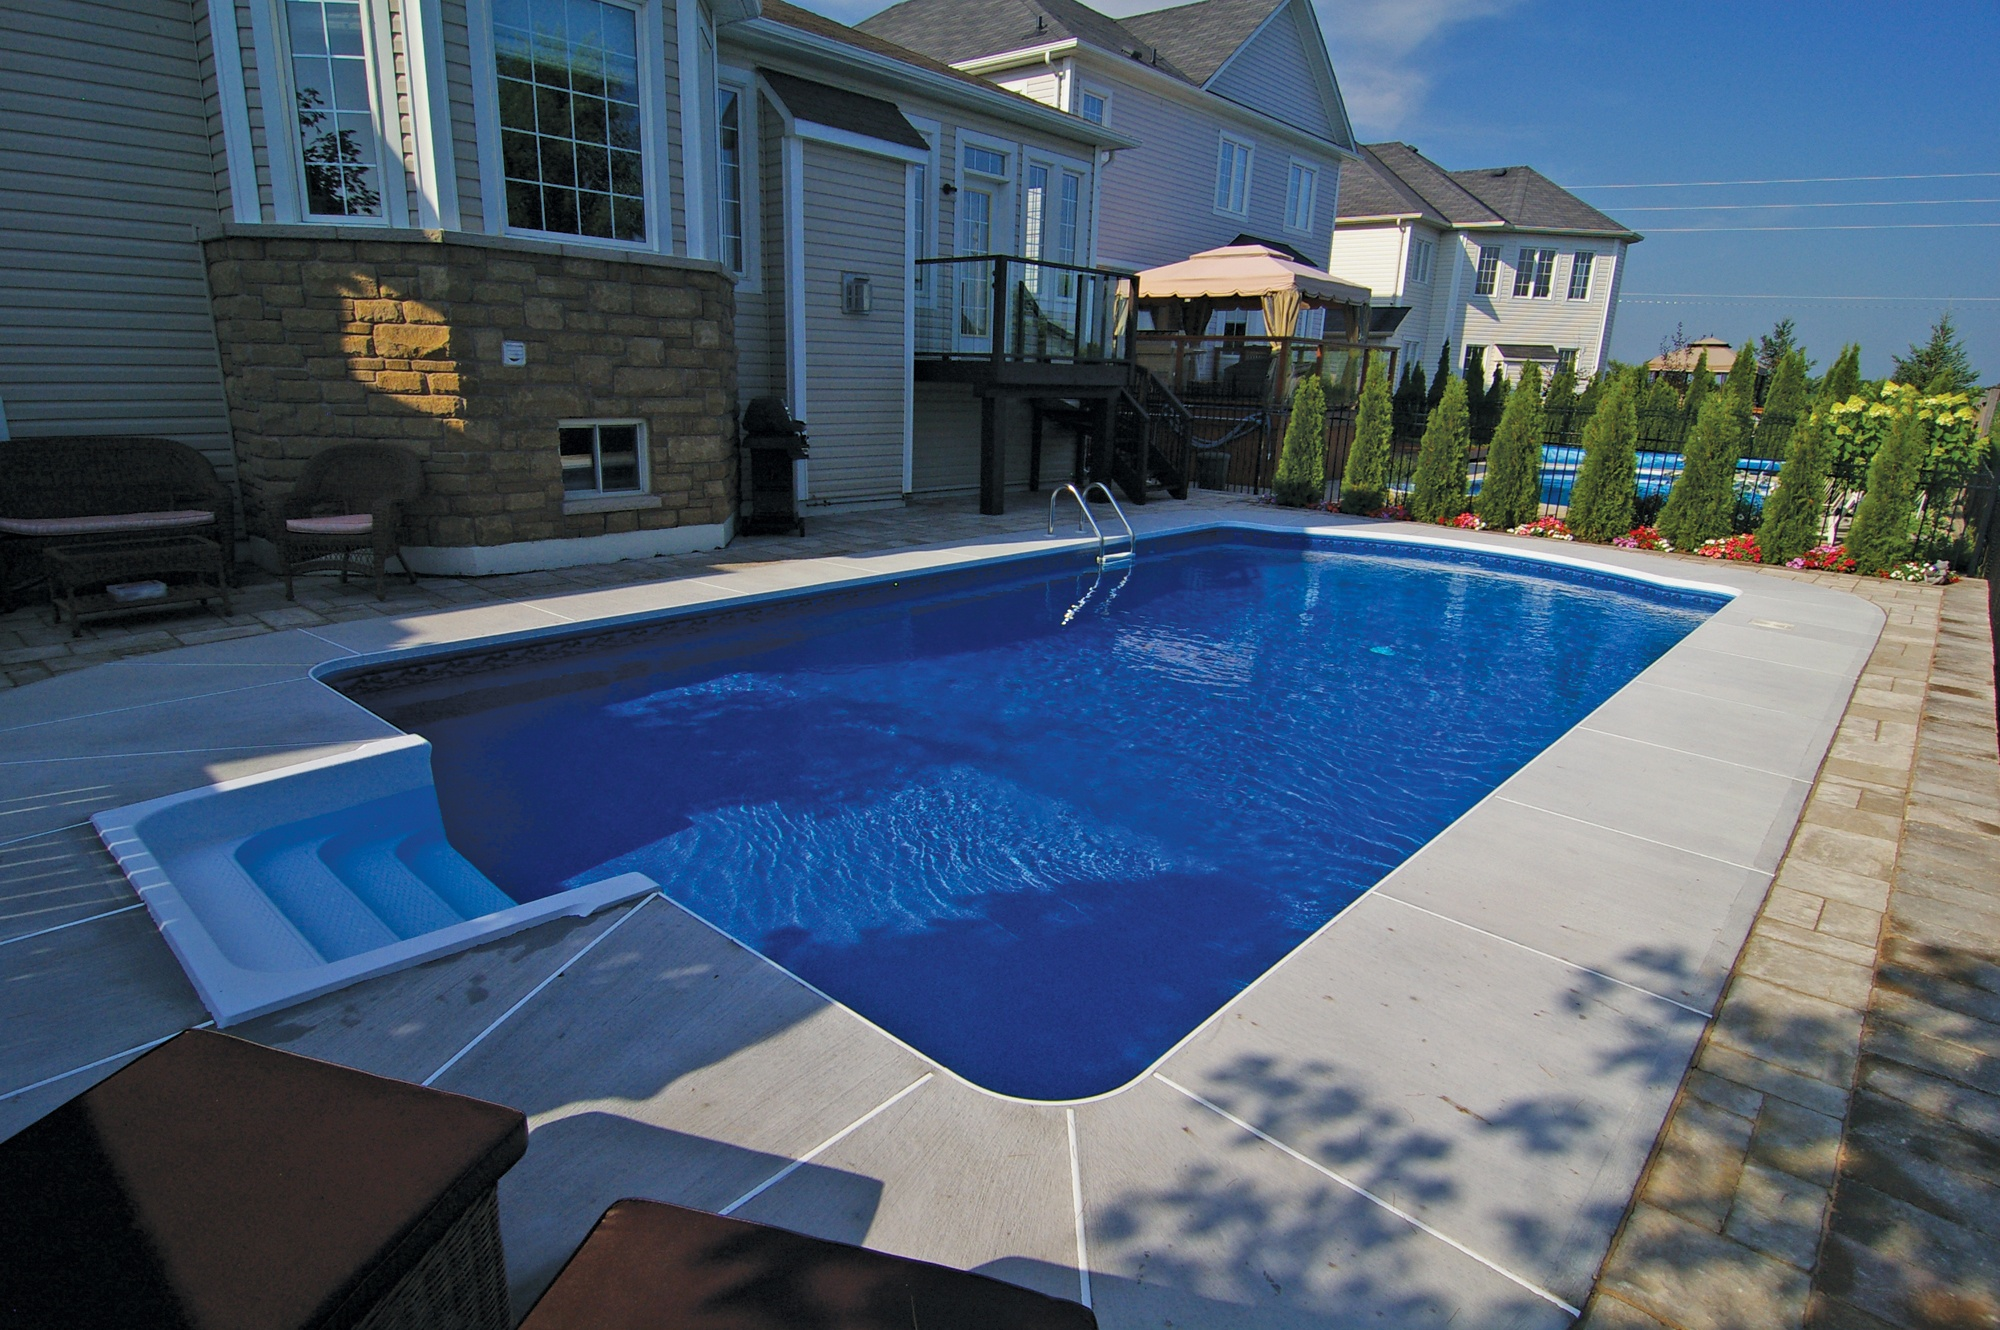 Polymer_Wall_Swimming_Pool_With_Vinyl_Liner_Latham_Pool_Products.jpg